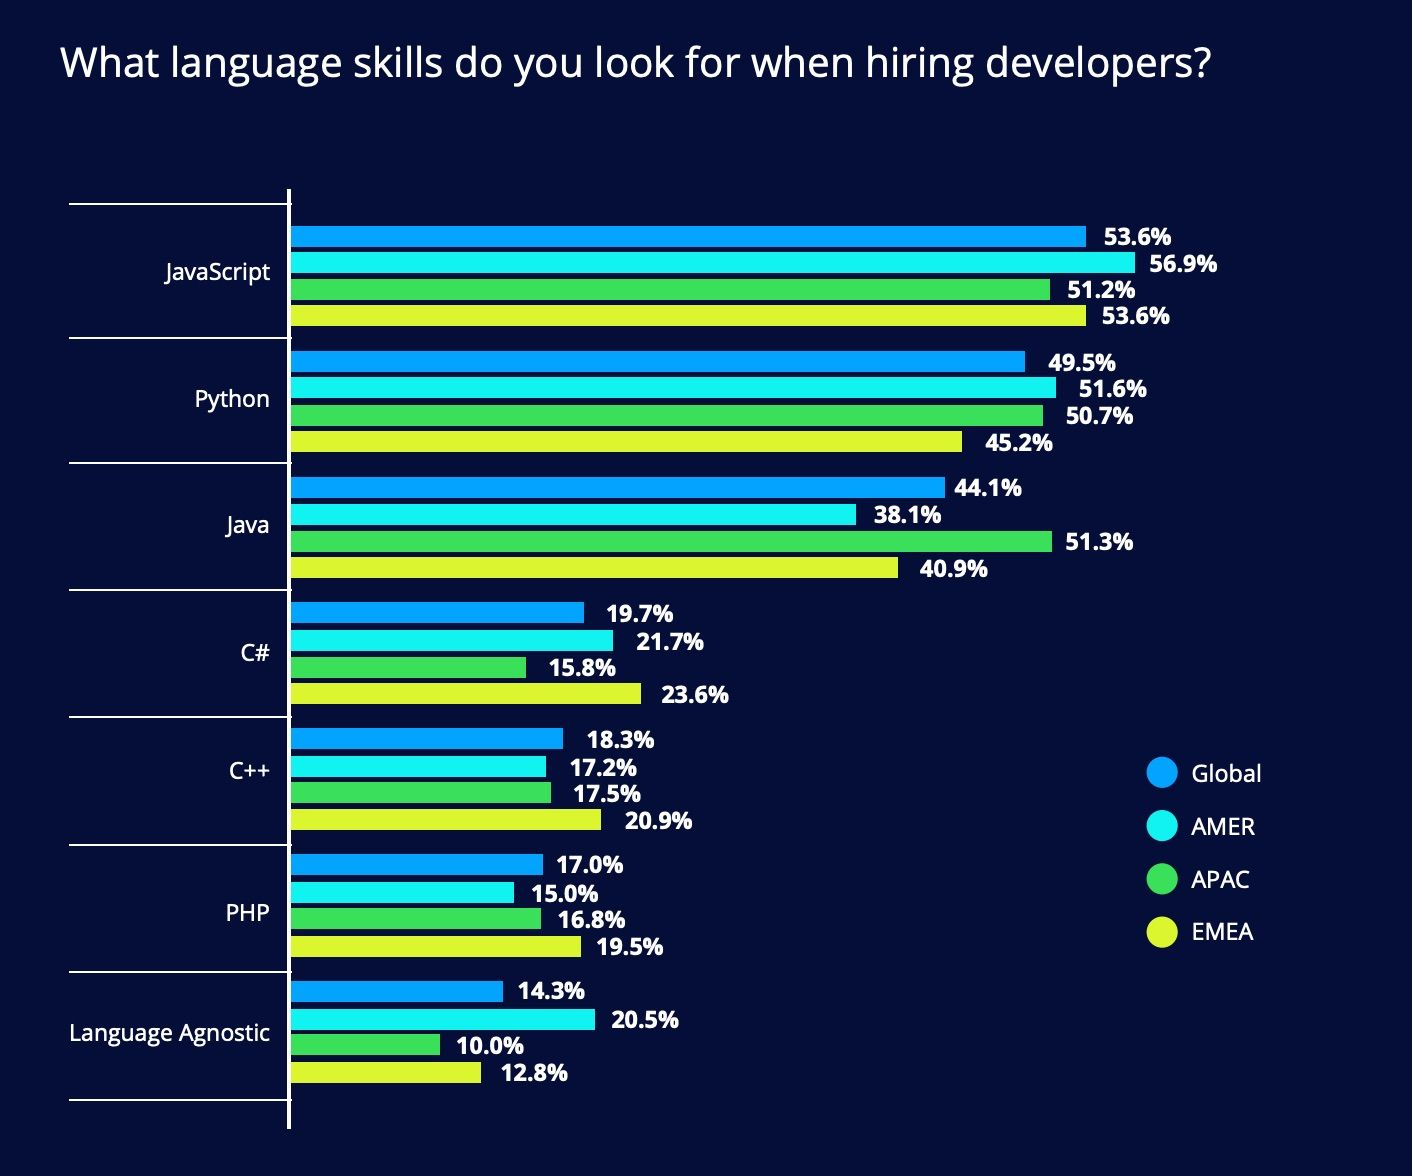 JavaScript is still the most sought-after programming language skill by employers.